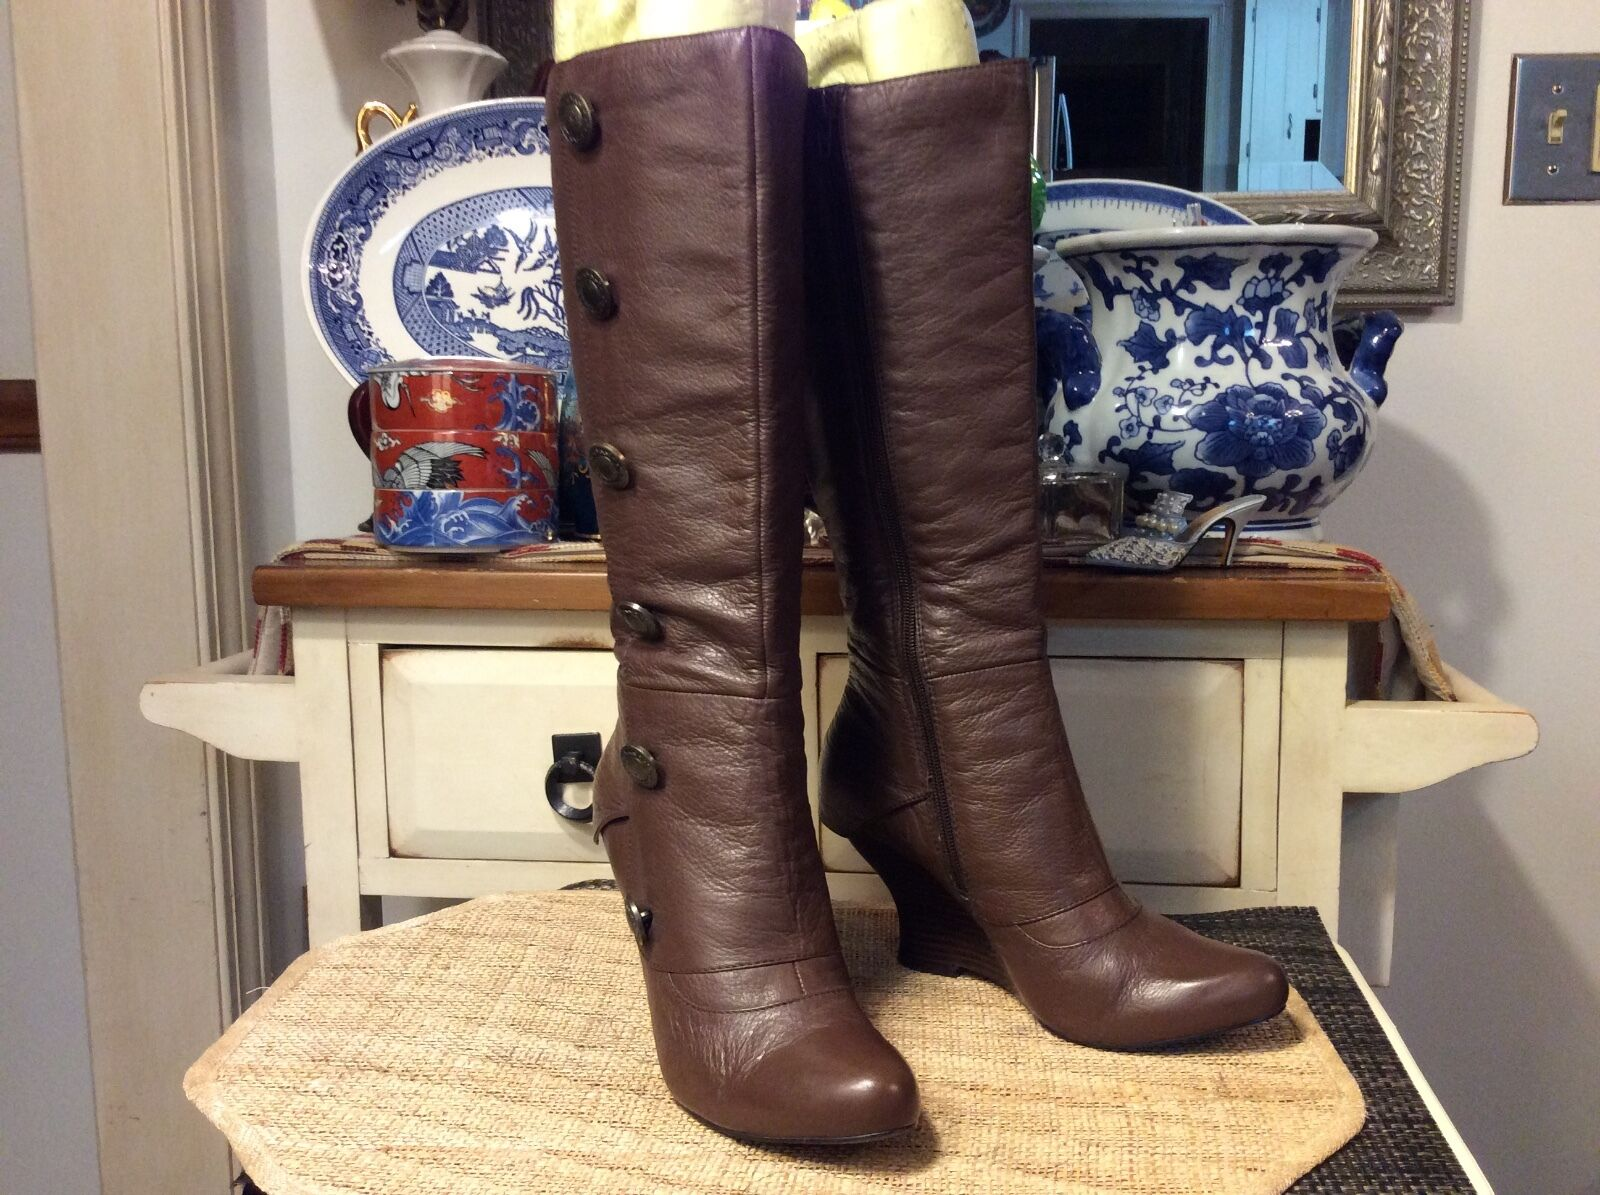 KENZIE 'Hippo' Brown Military inspired inspired inspired tall boots Leather Boots Women's Sz. 8M cfbf3f